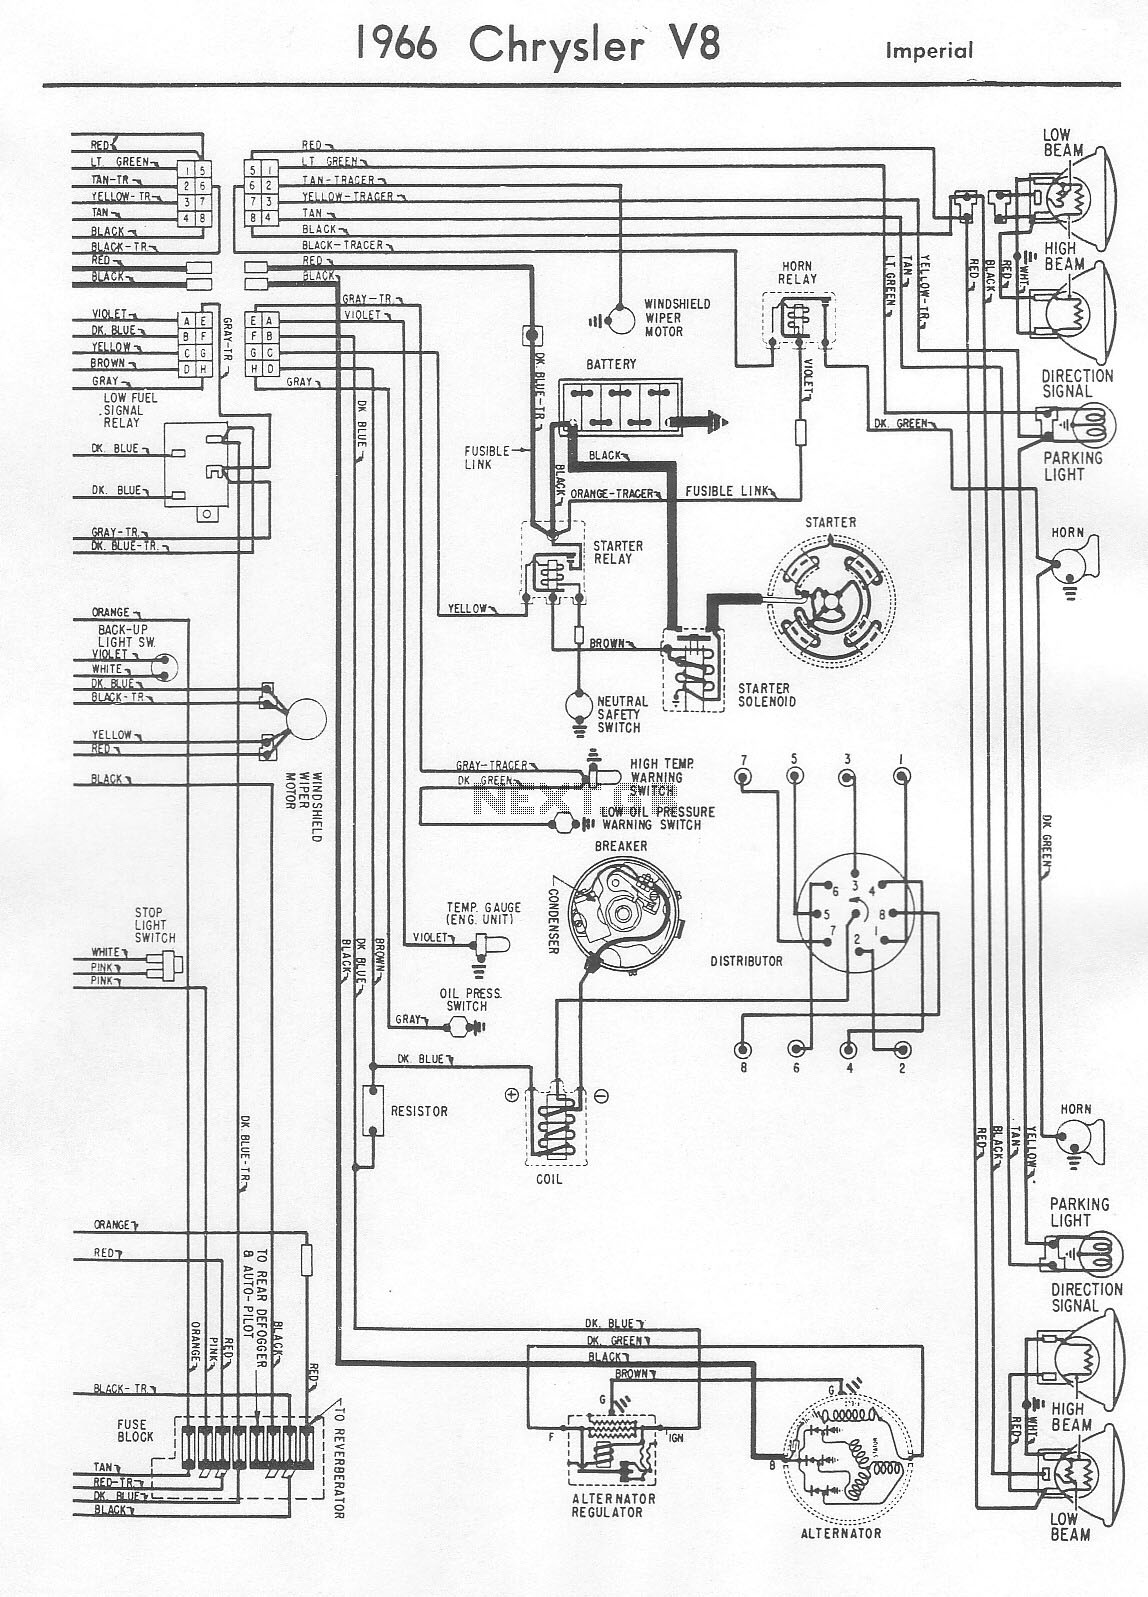 [QMVU_8575]  C855FD 1966 Chrysler 300 Wiring Diagram | Wiring Resources | 1966 Chrysler New Yorker Wiring Diagram |  | Wiring Resources